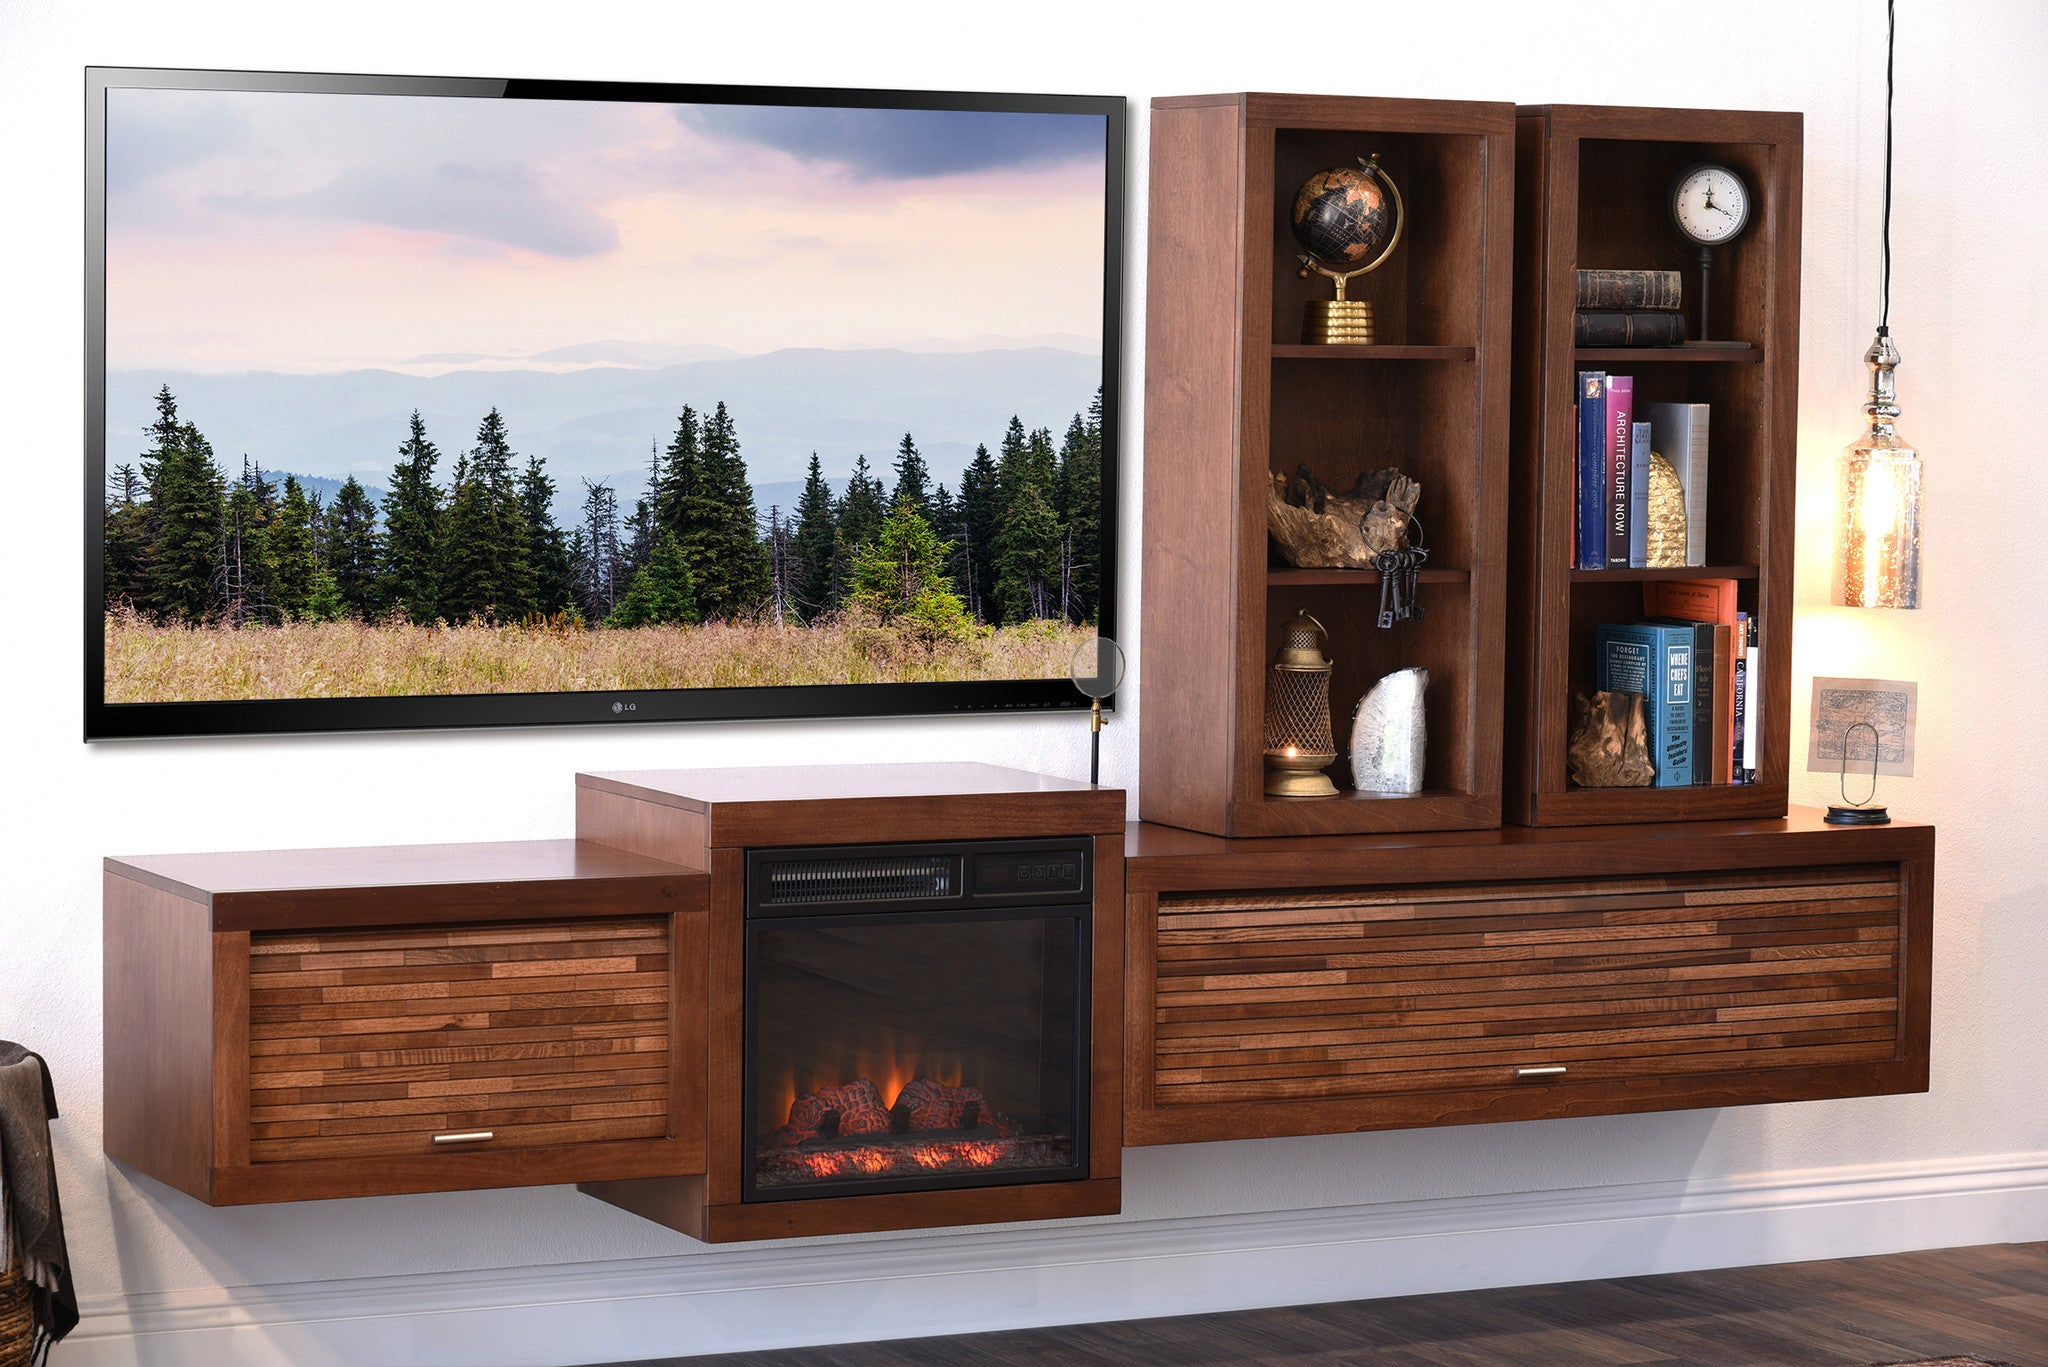 amazon tv dp farmington console stands up tvs electric kitchen for to dining home com fireplace rustic ameriwood